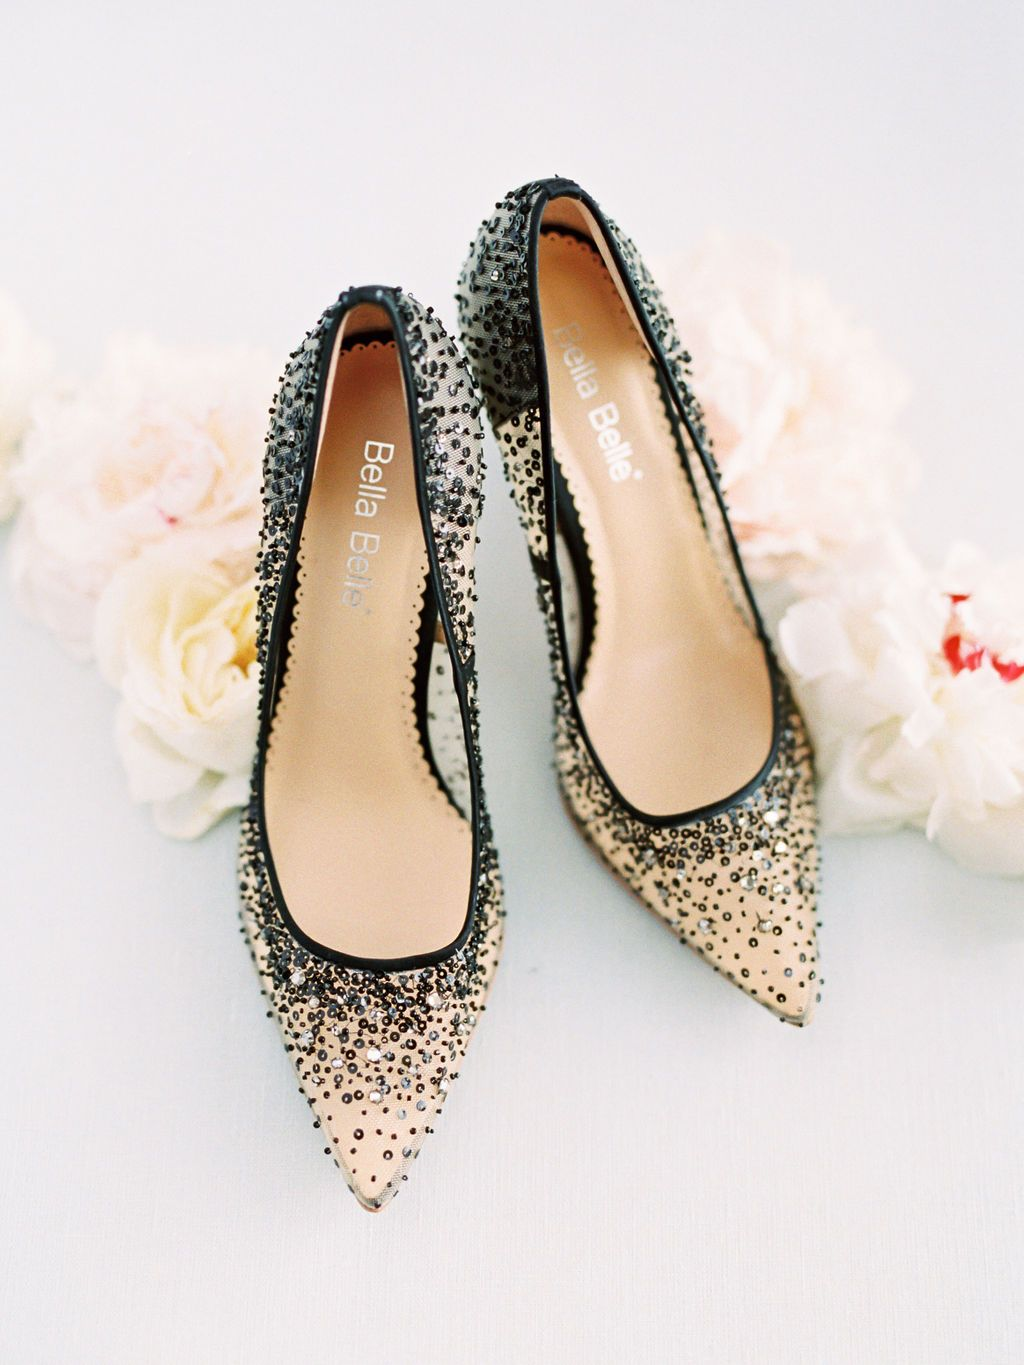 Pin on Chaussure mariage